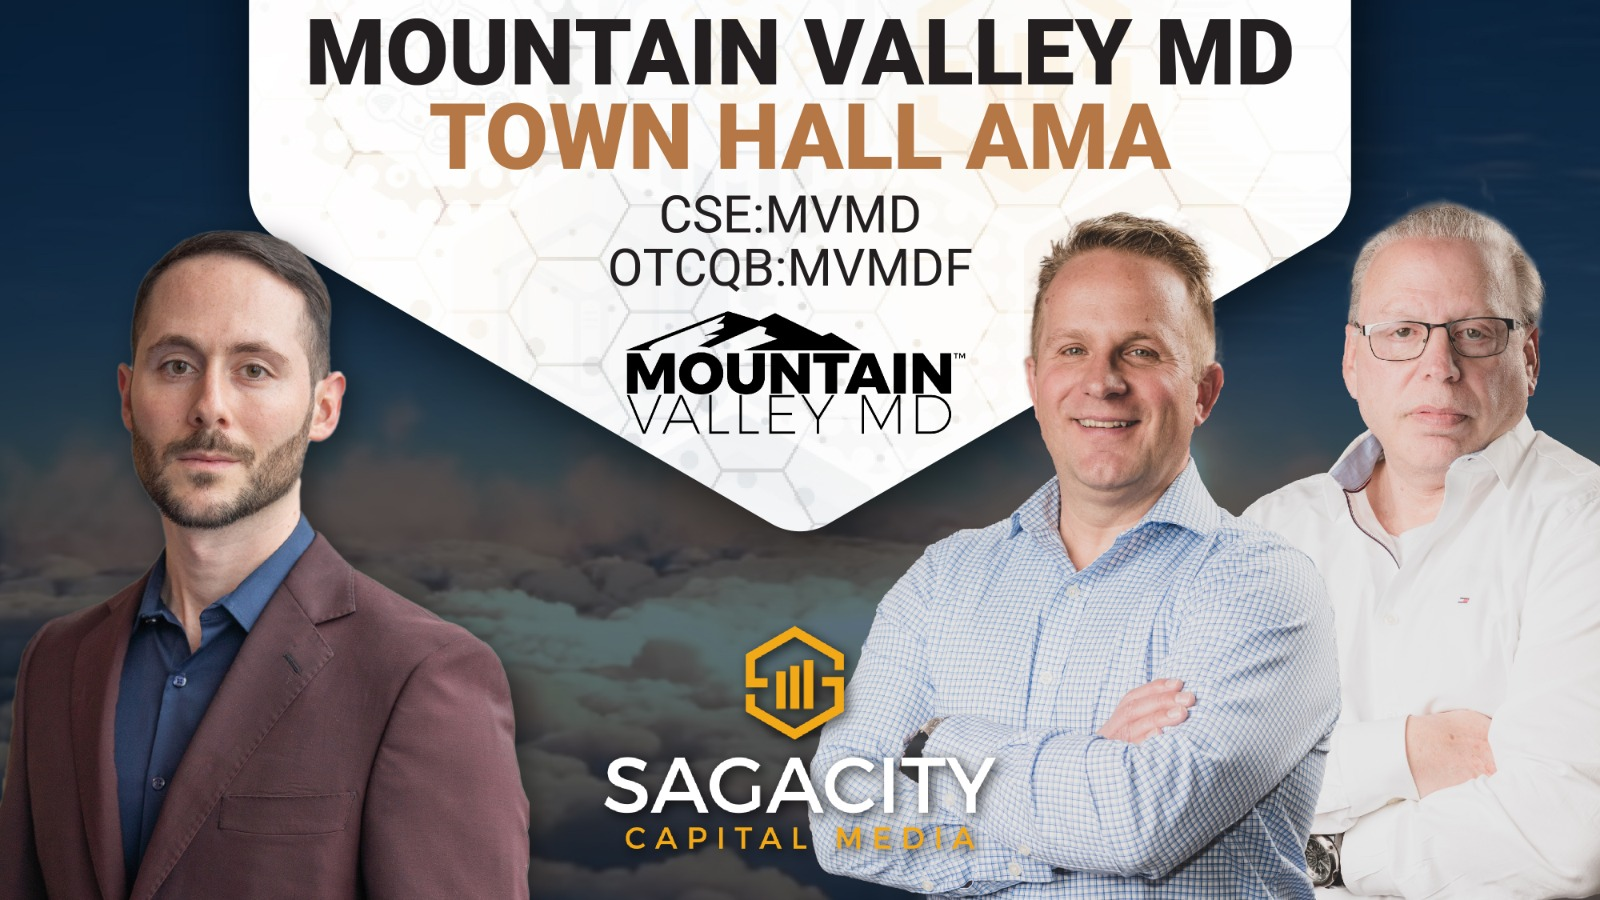 Mountain Valley MD Town Hall AMA - May 26th, 2021